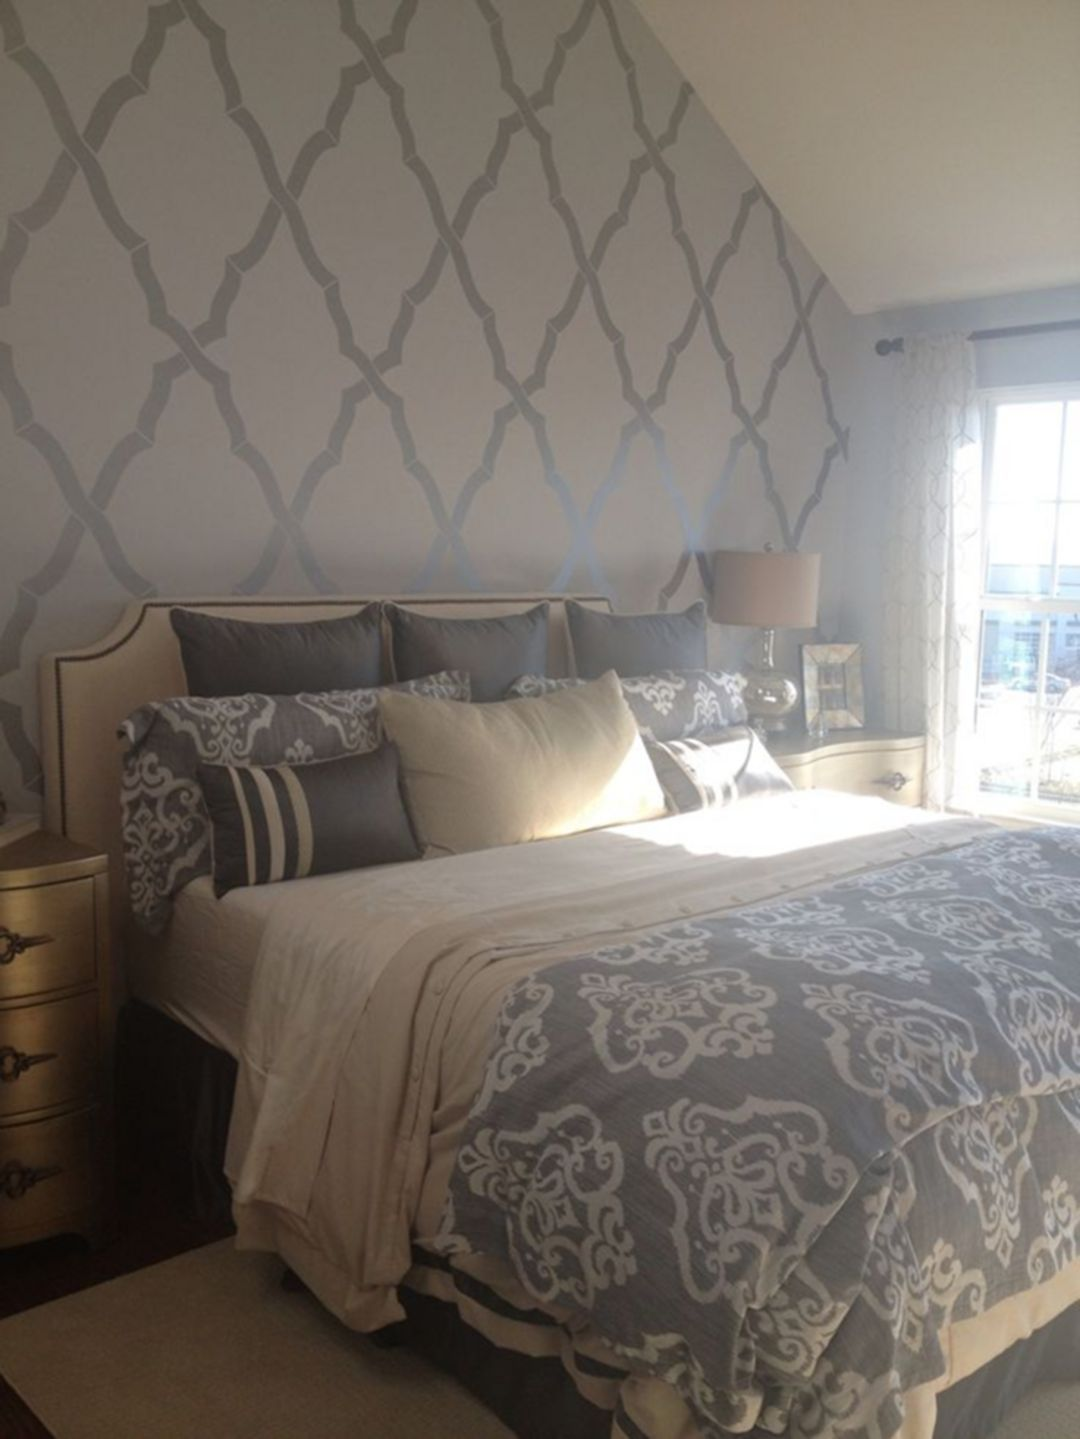 How To Make Your Master Bedroom Looks More Beautiful Wallpaper Bedroom Feature Wall Feature Wall Bedroom Feature Wall Wallpaper